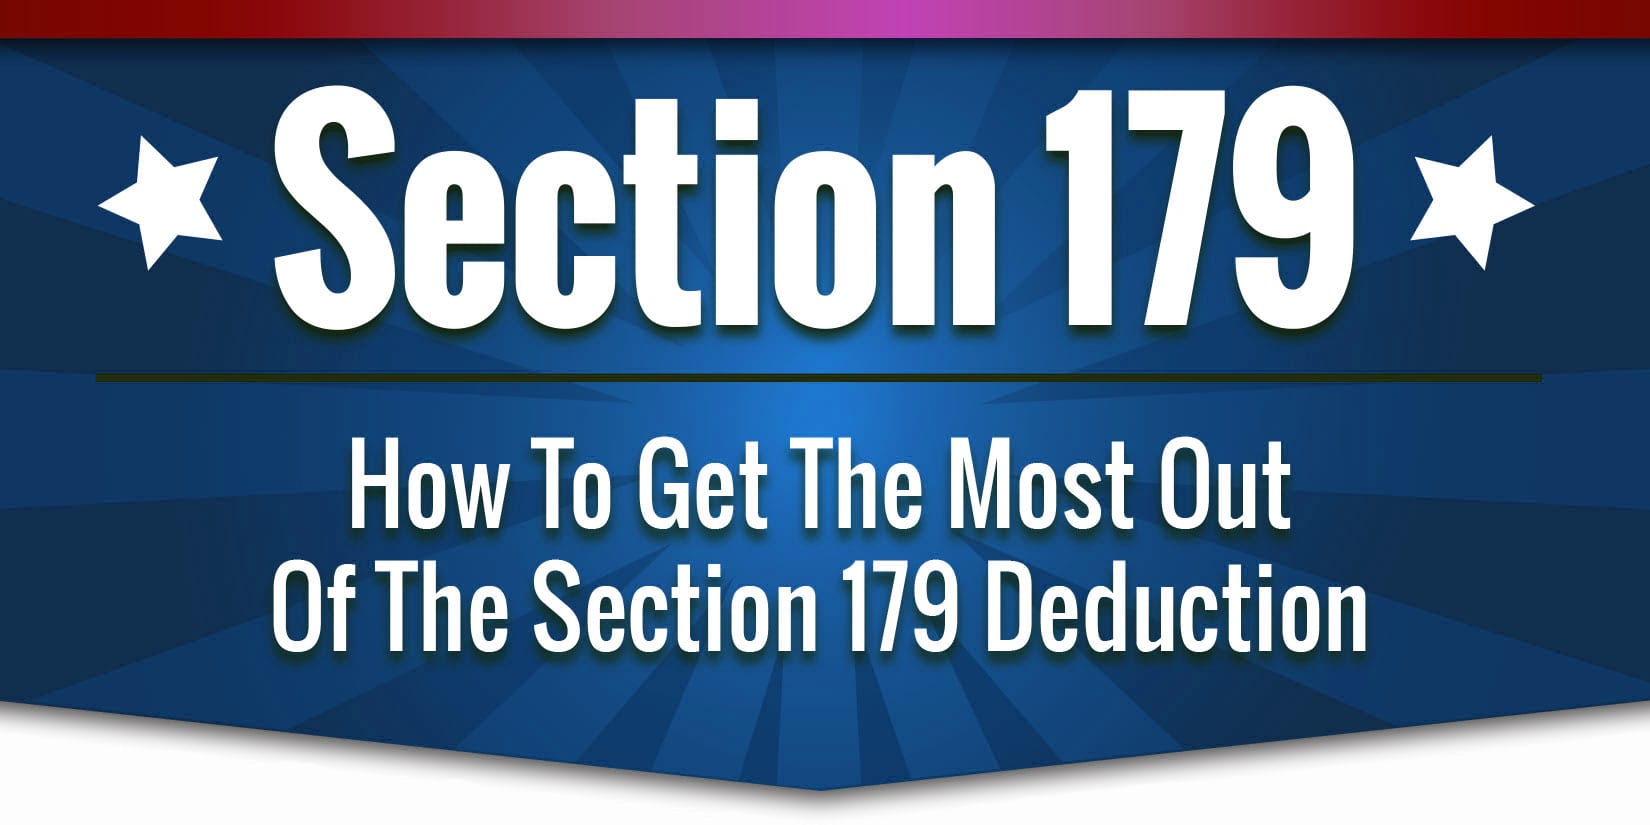 What is the Section 179 Deduction